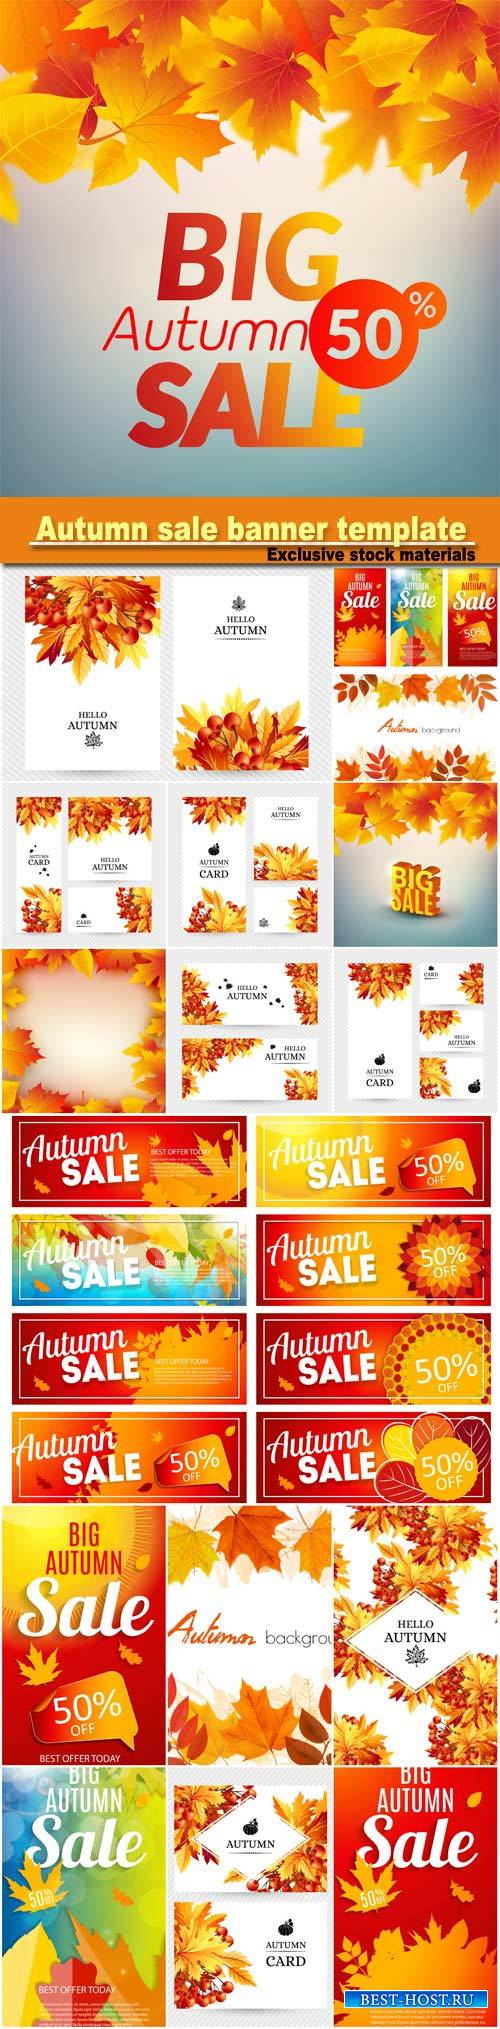 Autumn sale banner template set, business discount card